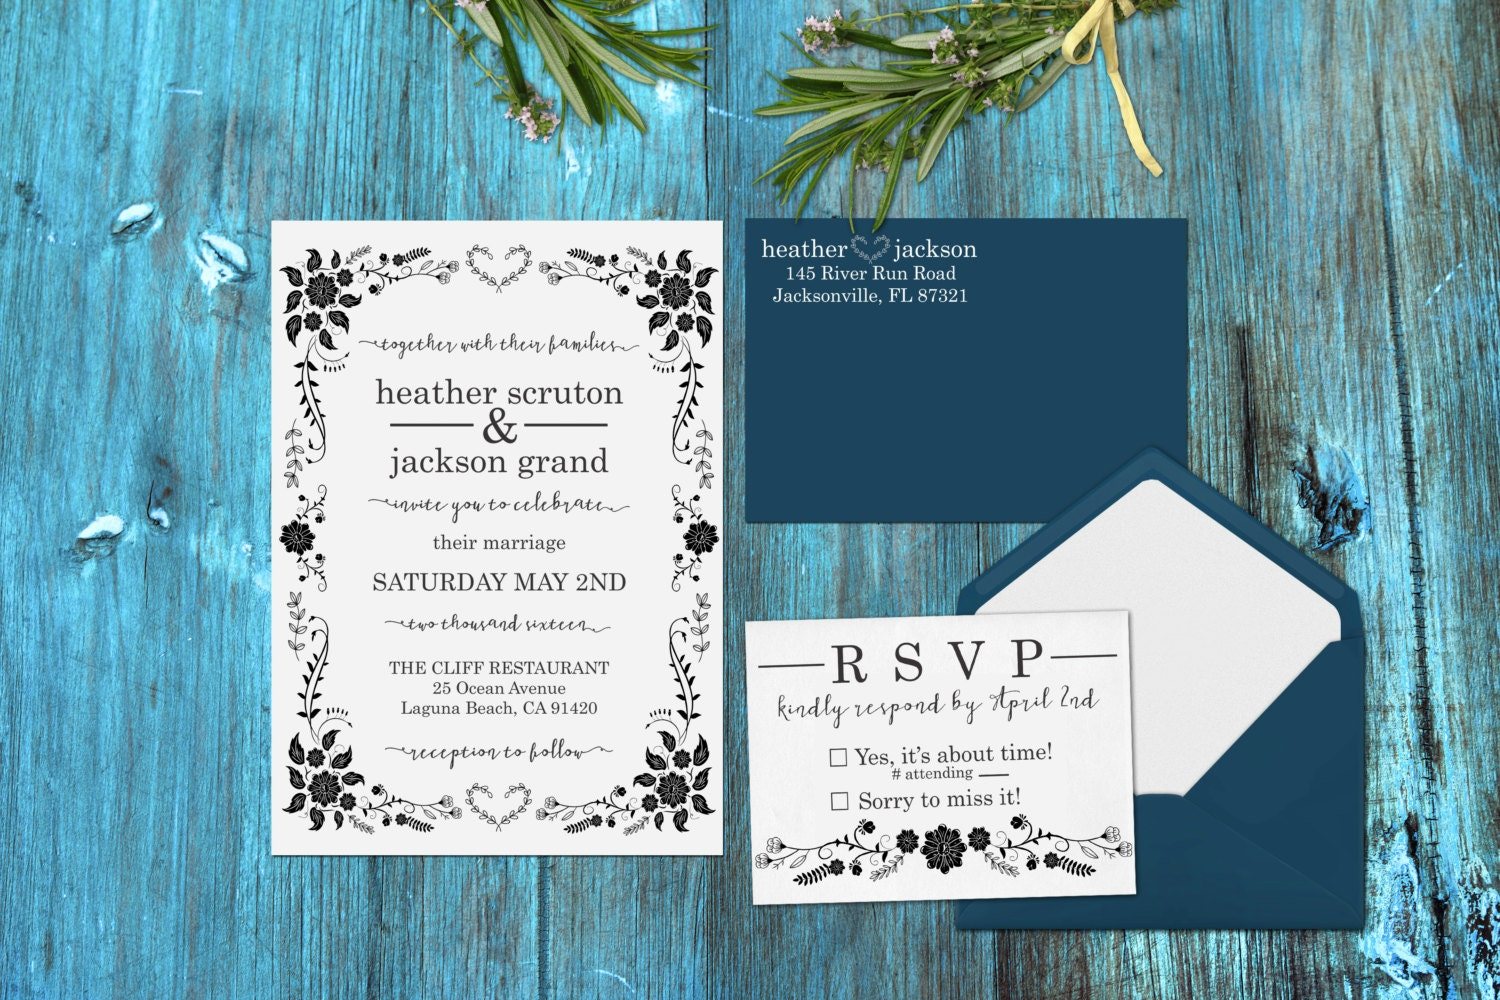 Stamps For Wedding Invitations: Wedding Invitation Stamp Set DIY Wedding Invitations